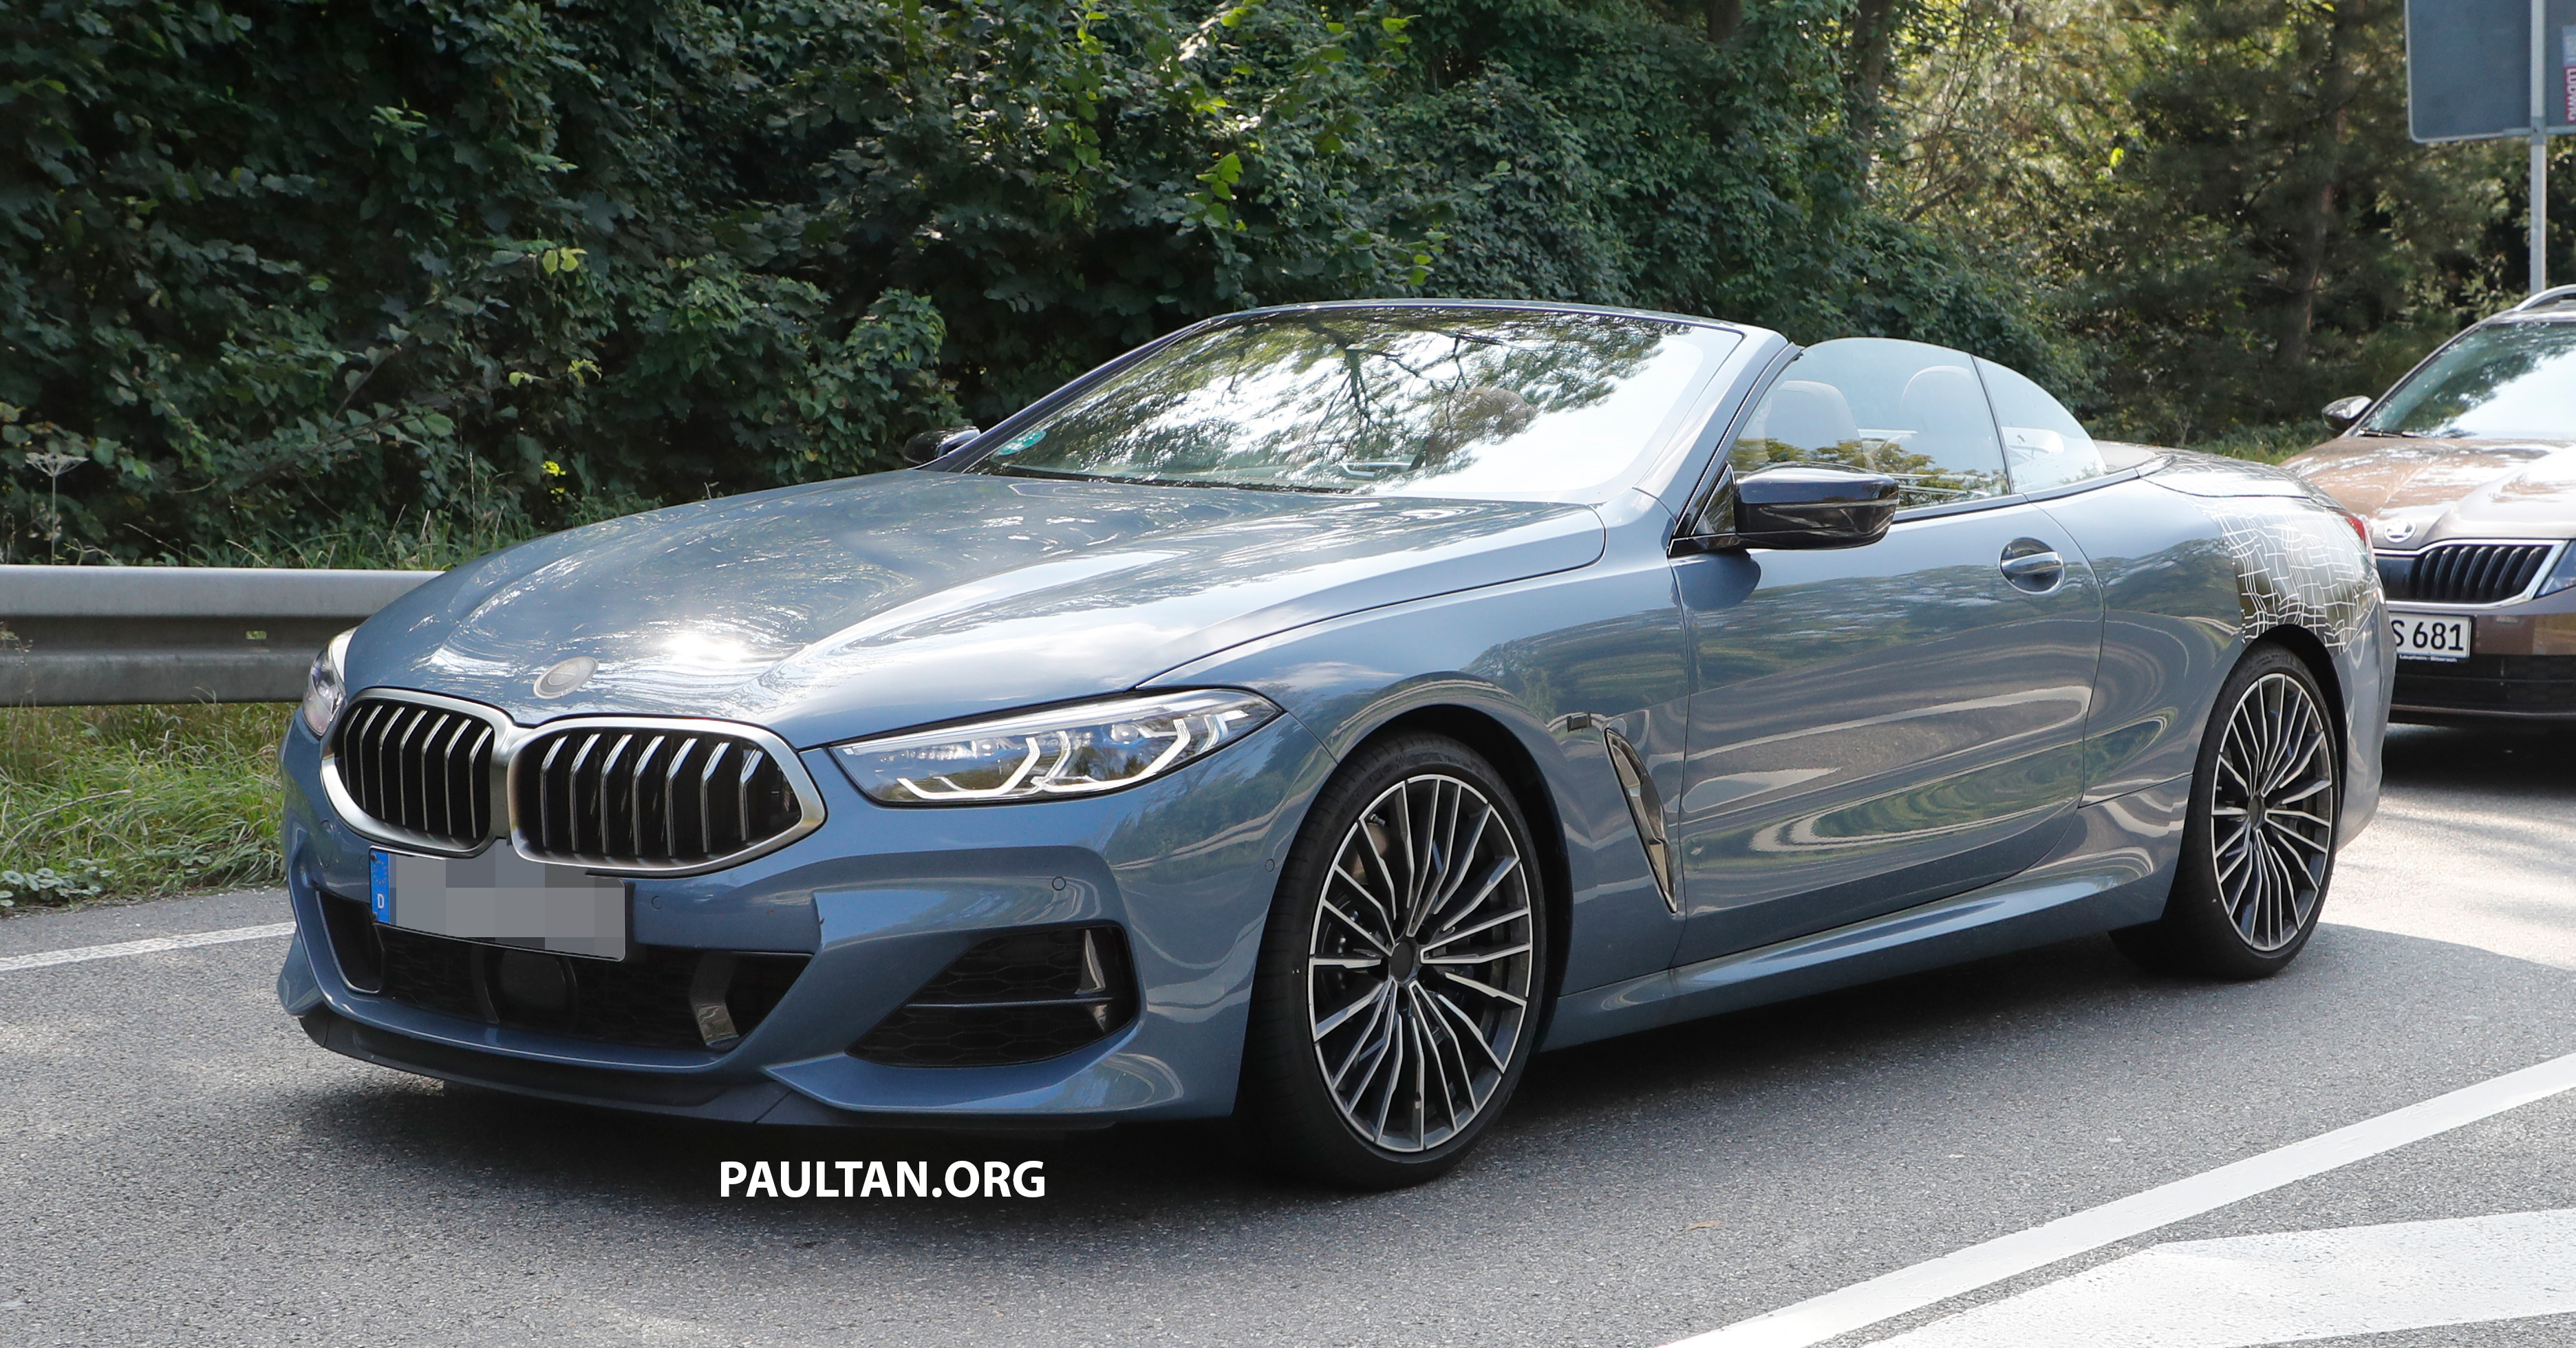 Spied 2019 Bmw 8 Series Cabriolet Reveals More Skin Paul Tan